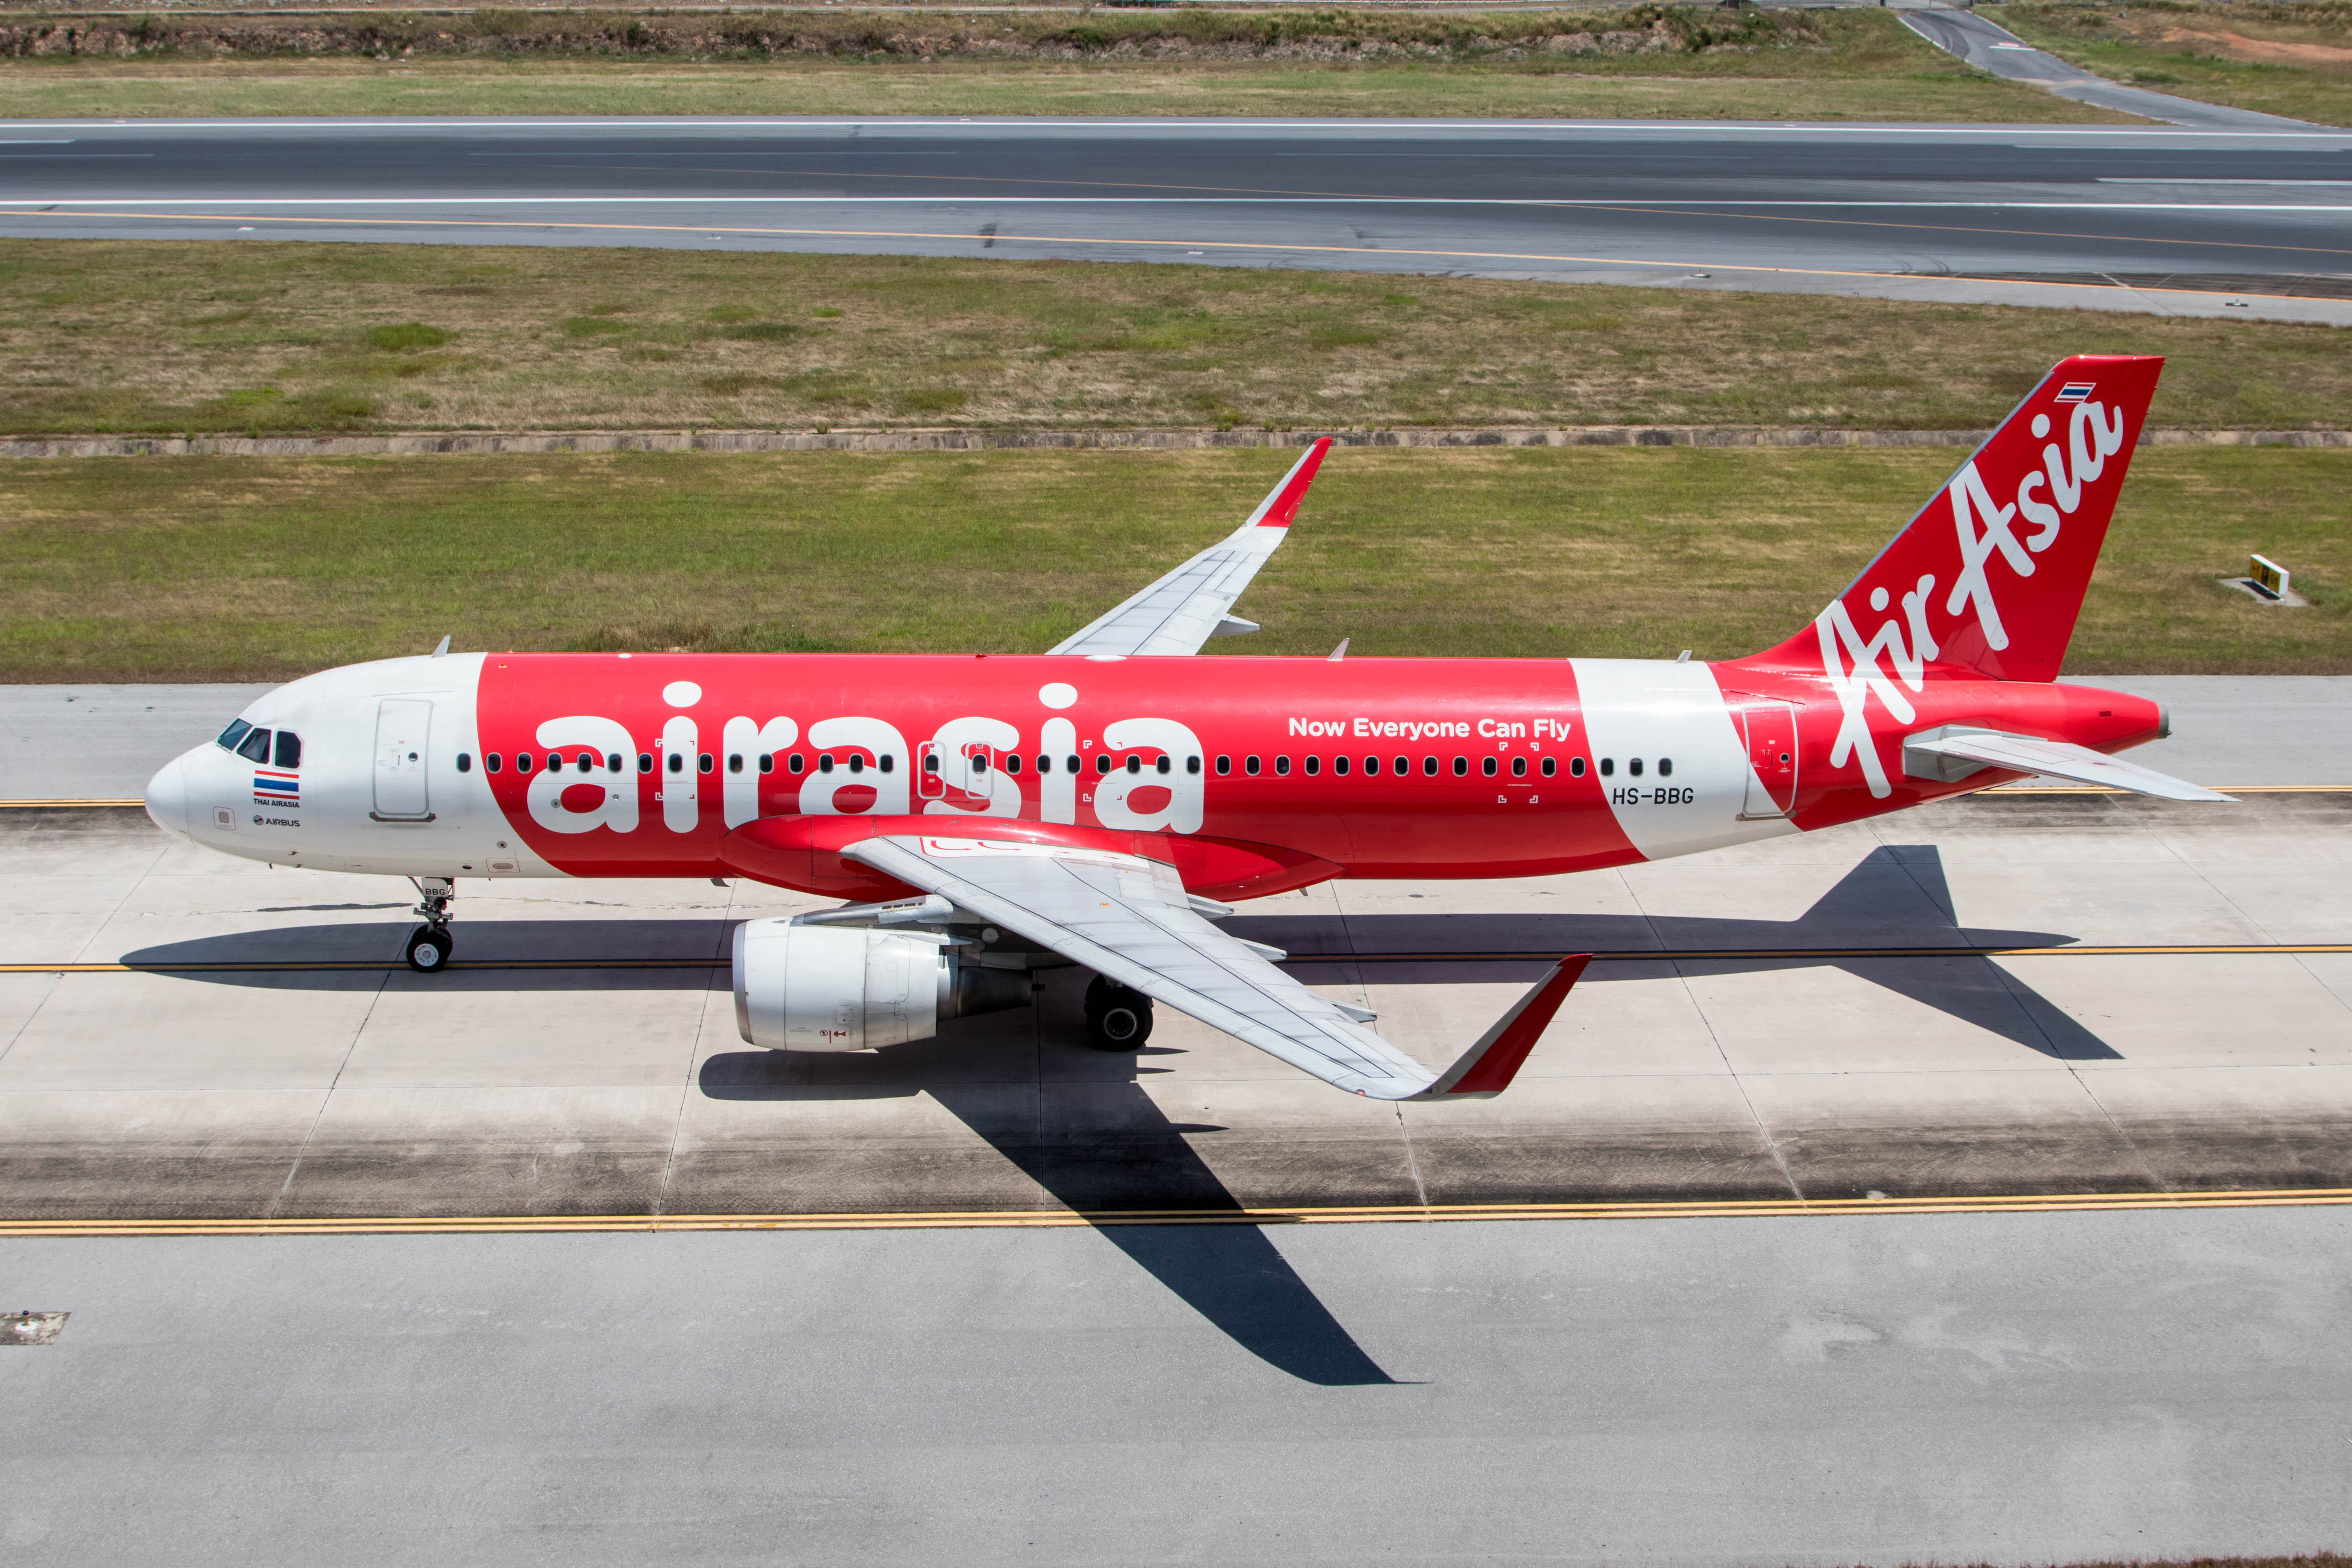 AirAsia Partners with Kiwi.com, (Sort of) Starts Selling Other Airlines' Tickets